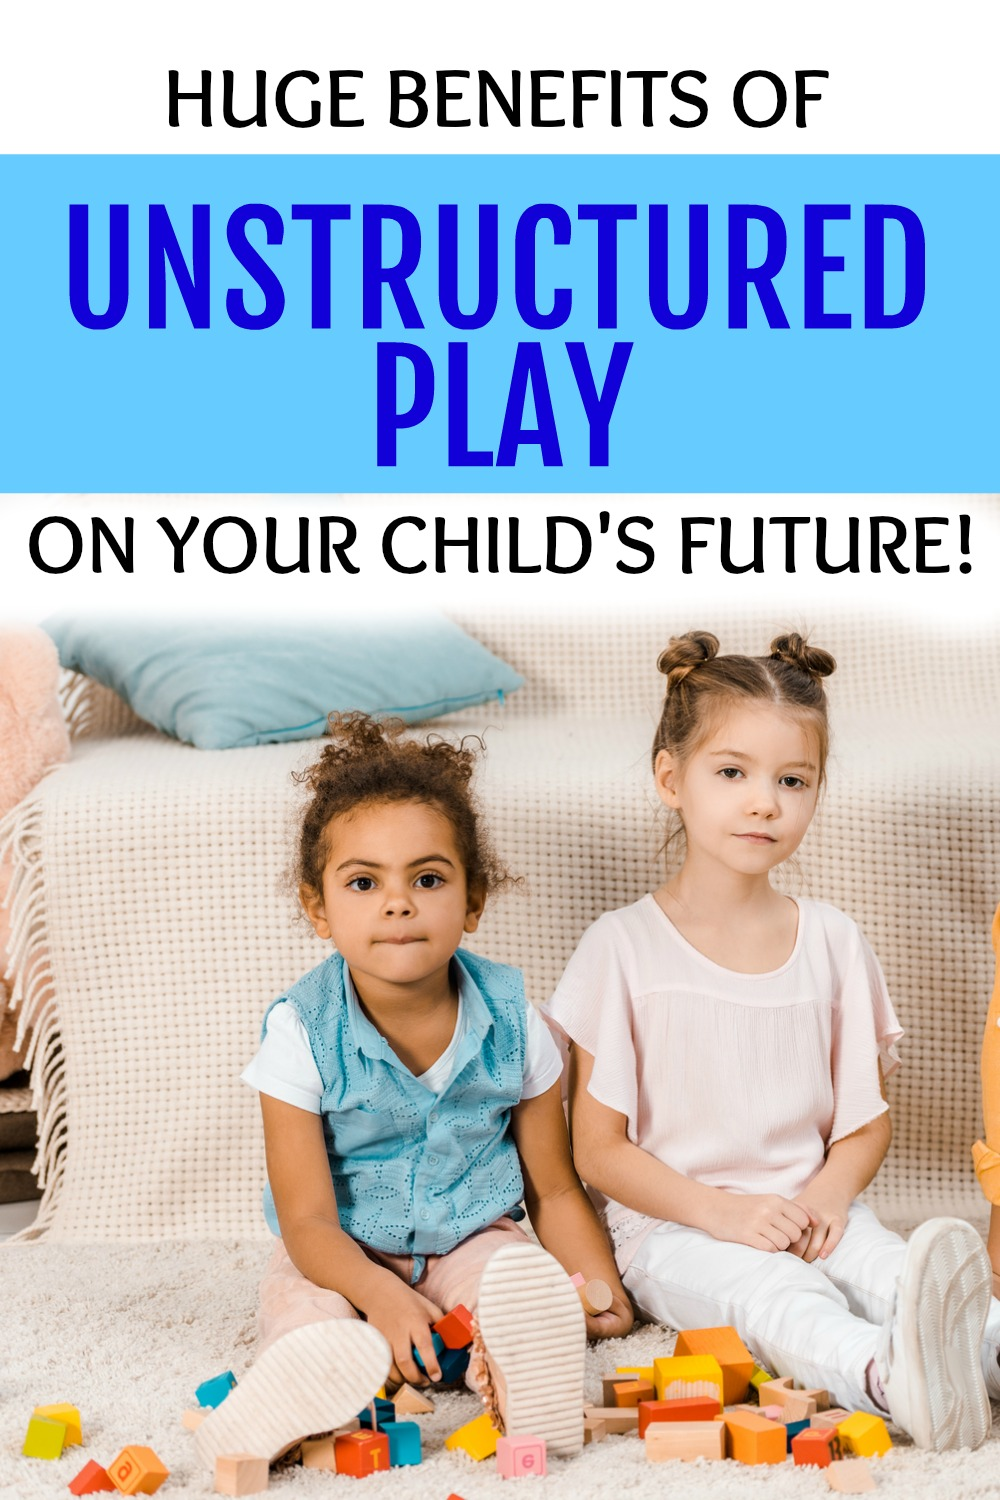 BENEFITS OF UNSTRUCTURED PLAY Text overlay over an african american young girl and a caucasian young girl playing blocks